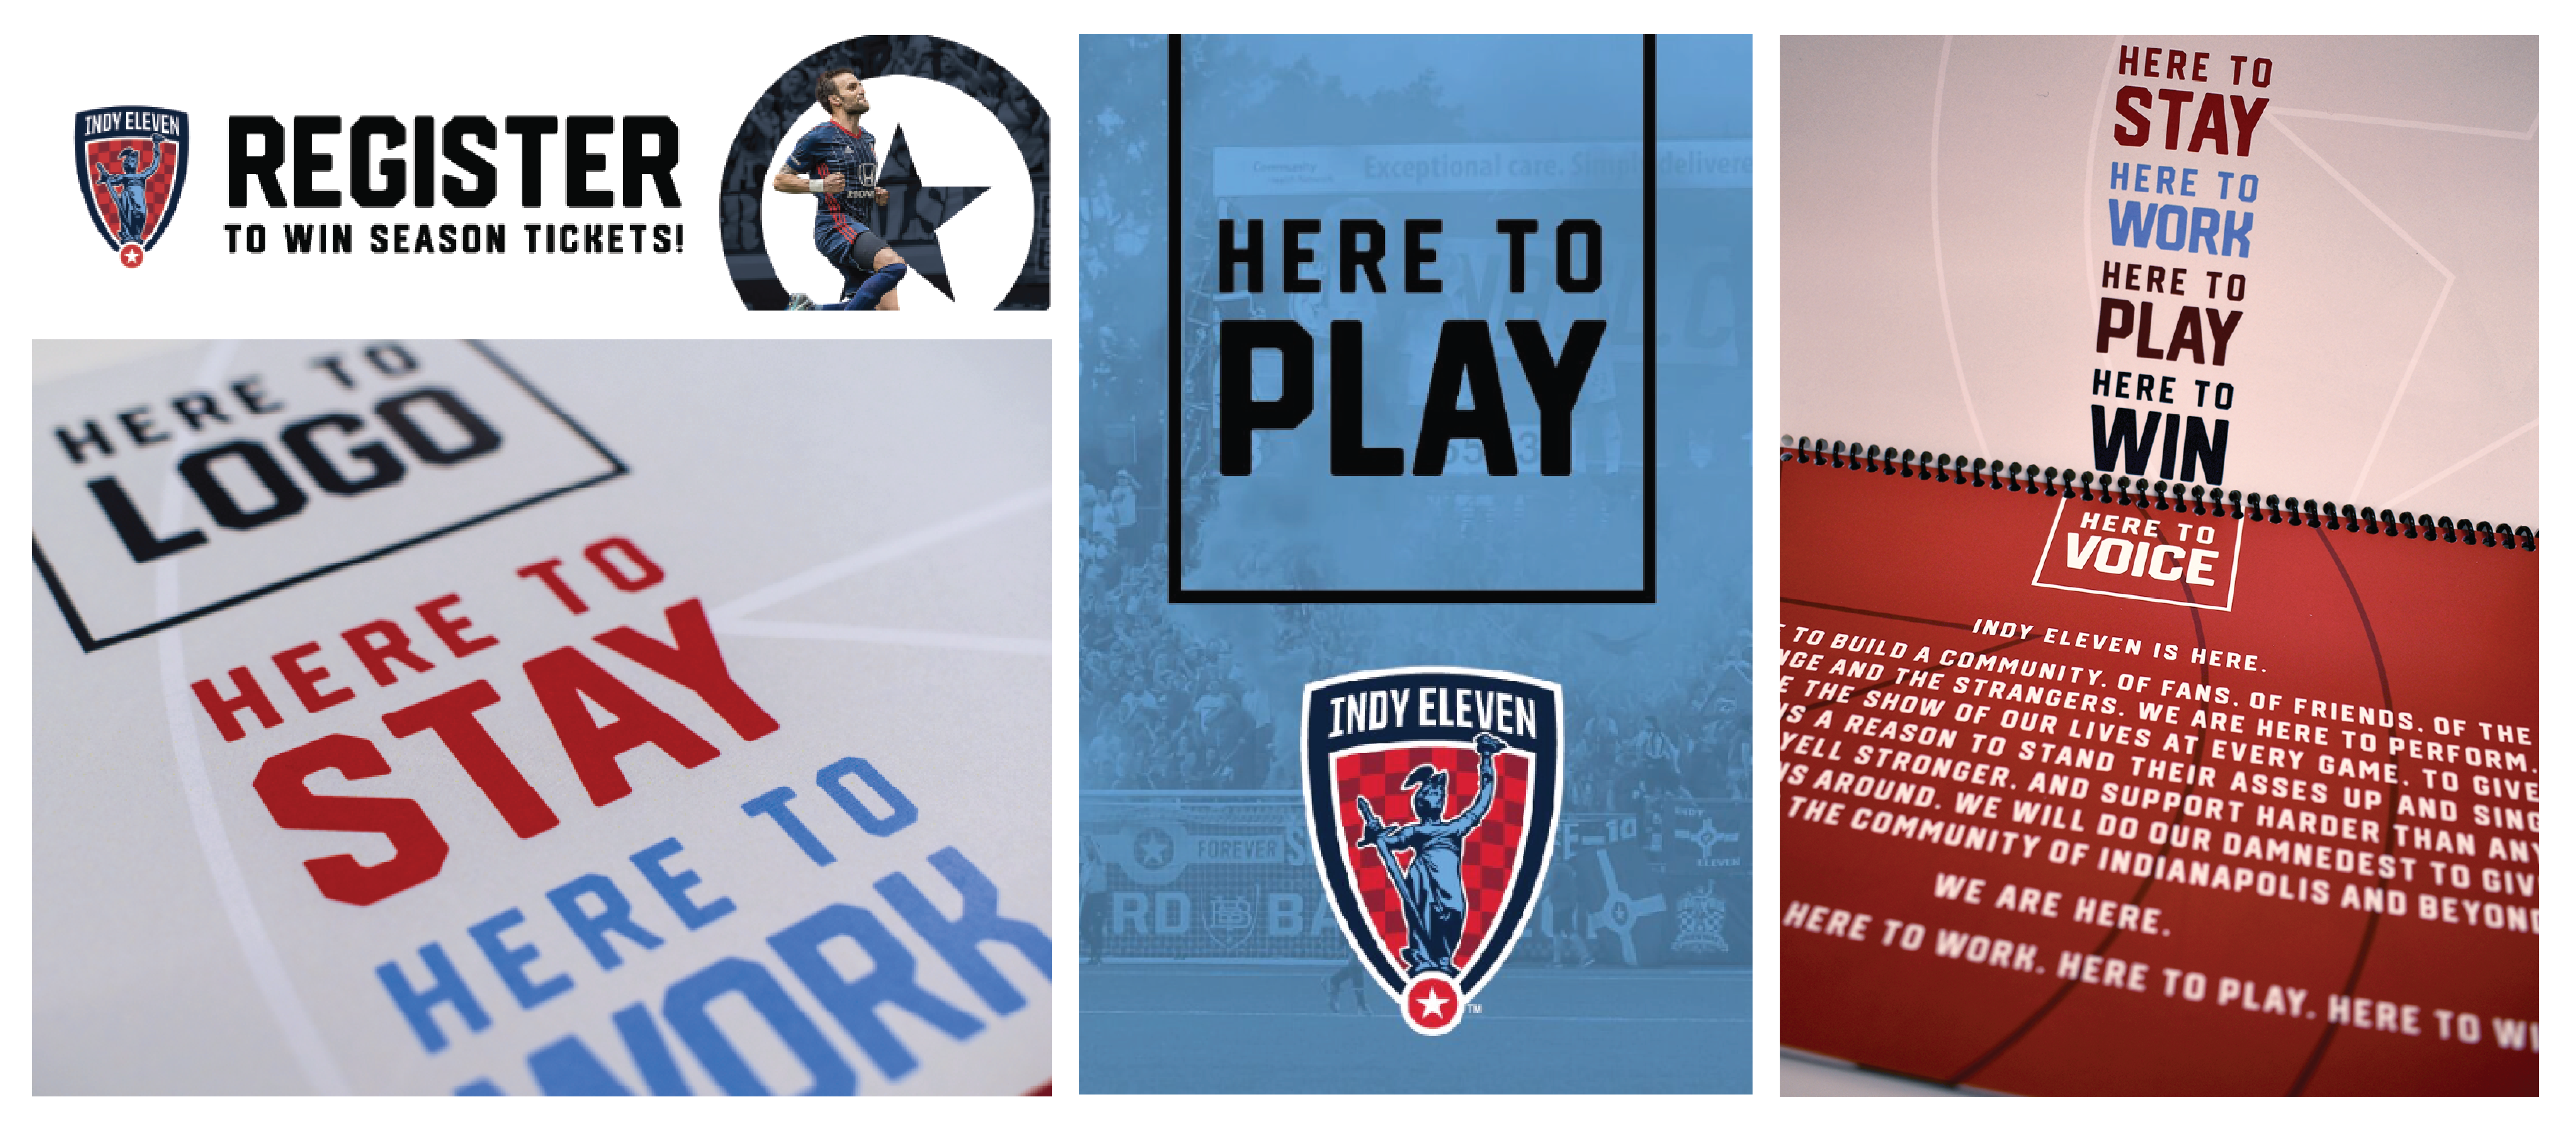 The What 4 Season Branding: Indy Eleven